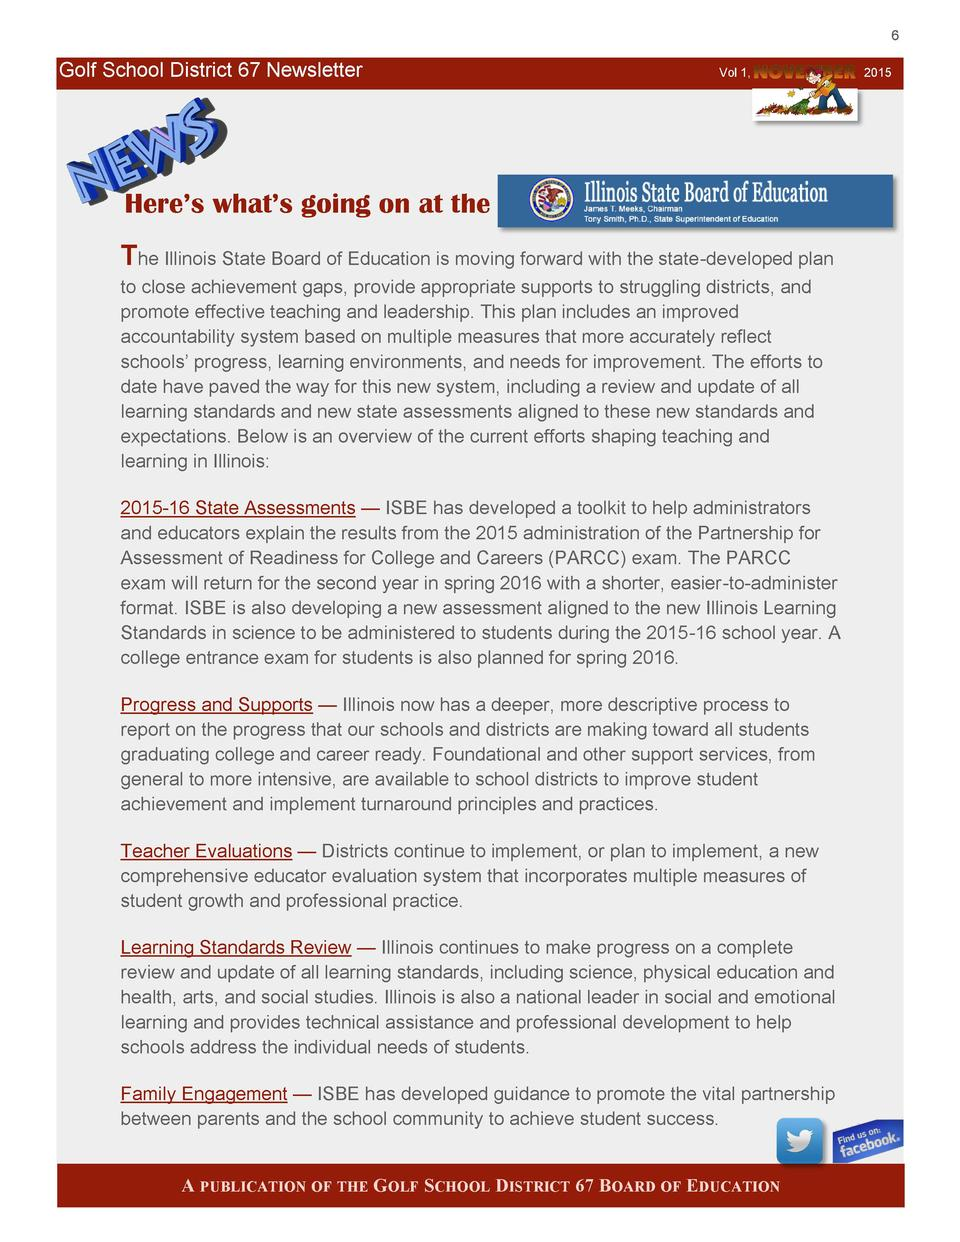 6  Golf School District 67 Newsletter  Vol 1,  Here   s what   s going on at the The Illinois State Board of Education is ...